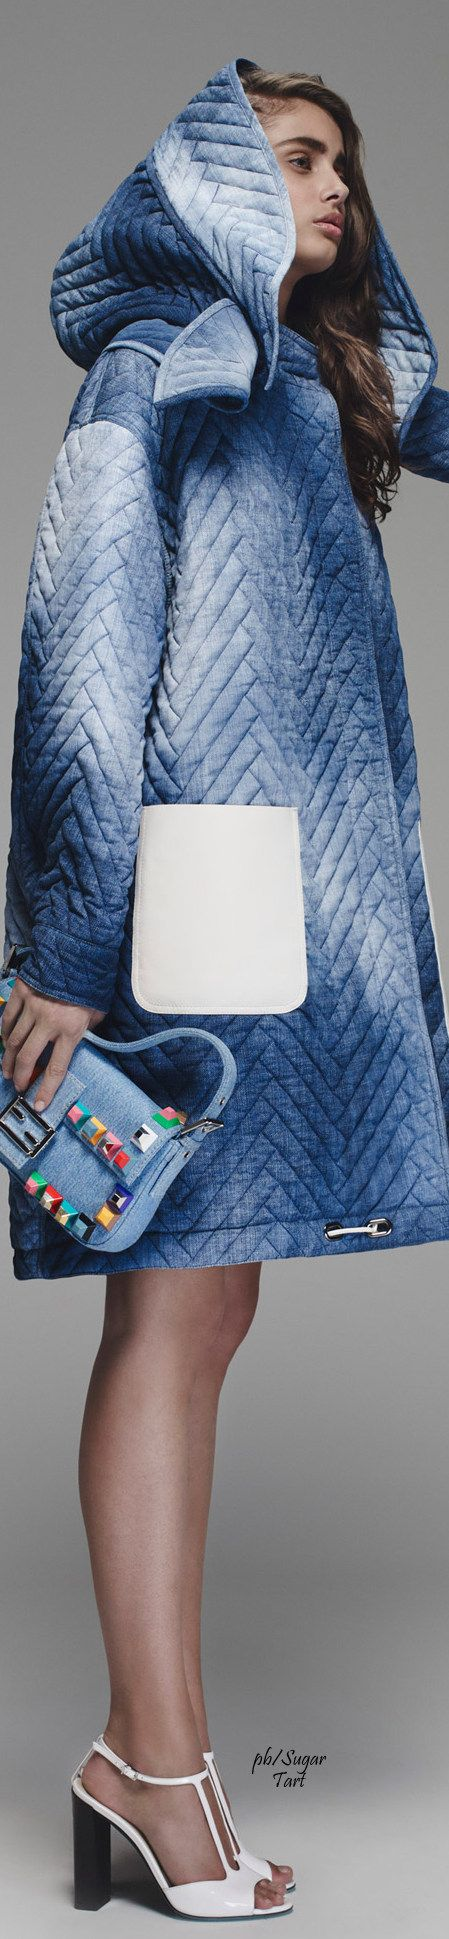 Fendi Resort 2016: